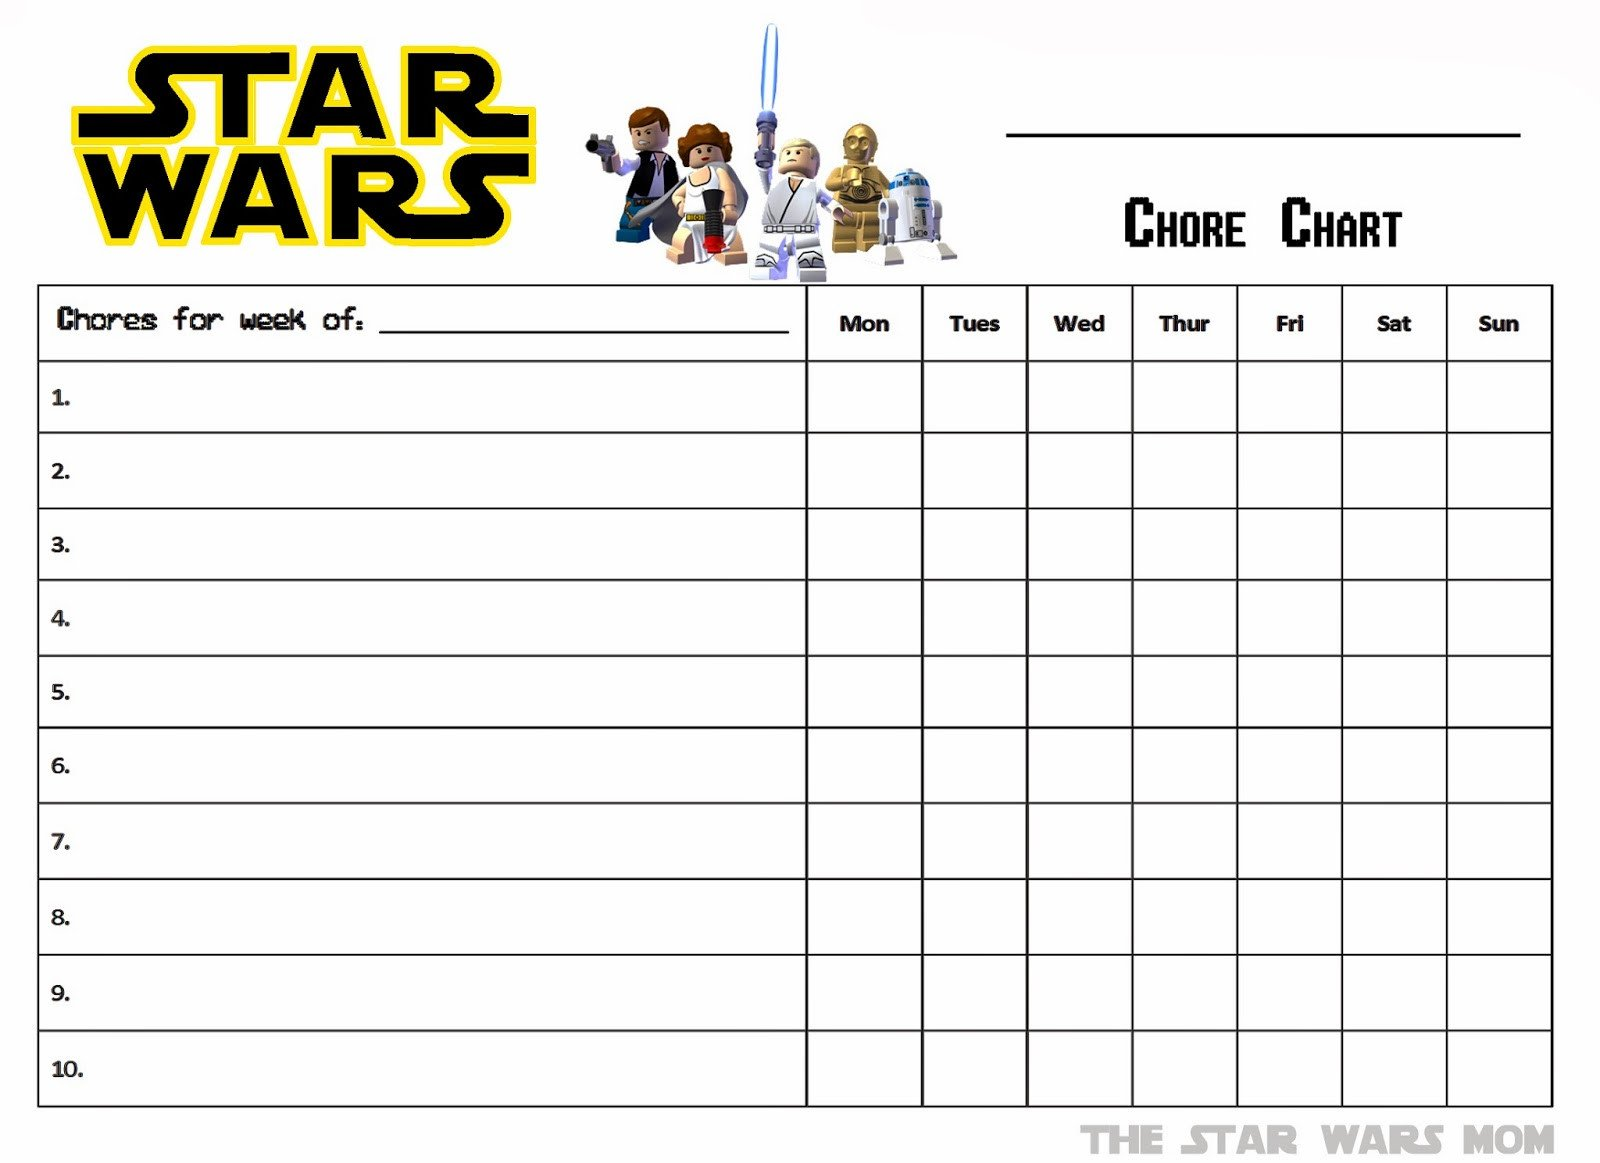 Chore Chart Templates Free Lego Star Wars Free Printable Chores Chart the Star